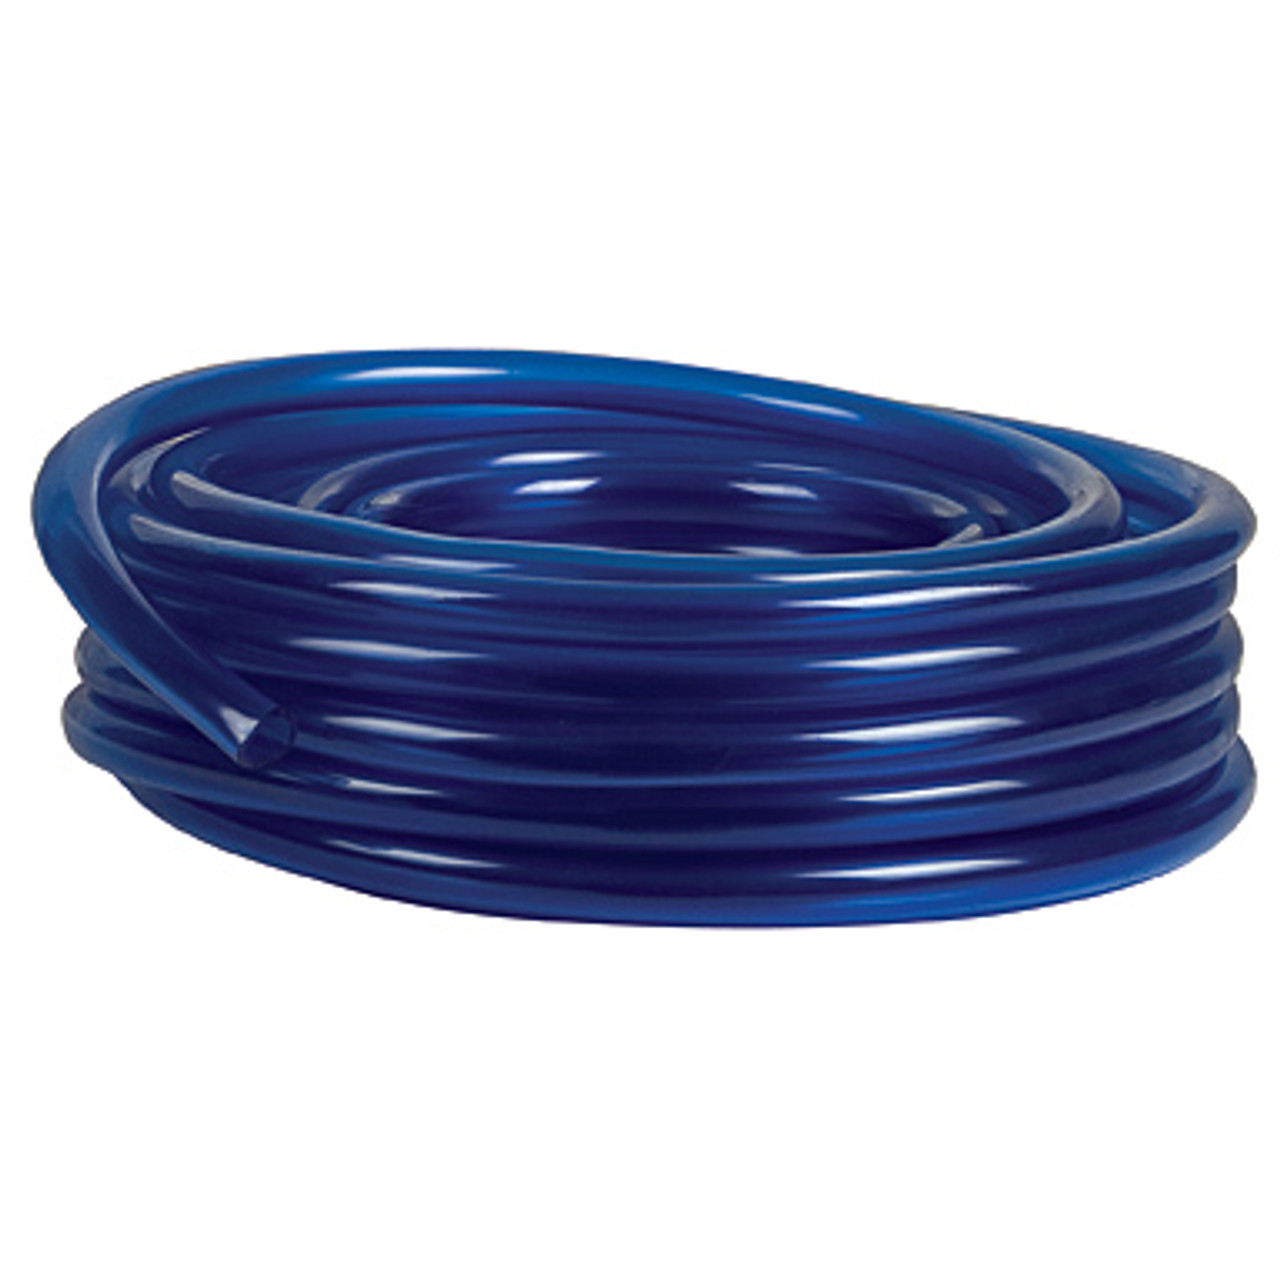 "Blue Tubing 1/2"" ID- 5/8"" OD - 100 Foot"